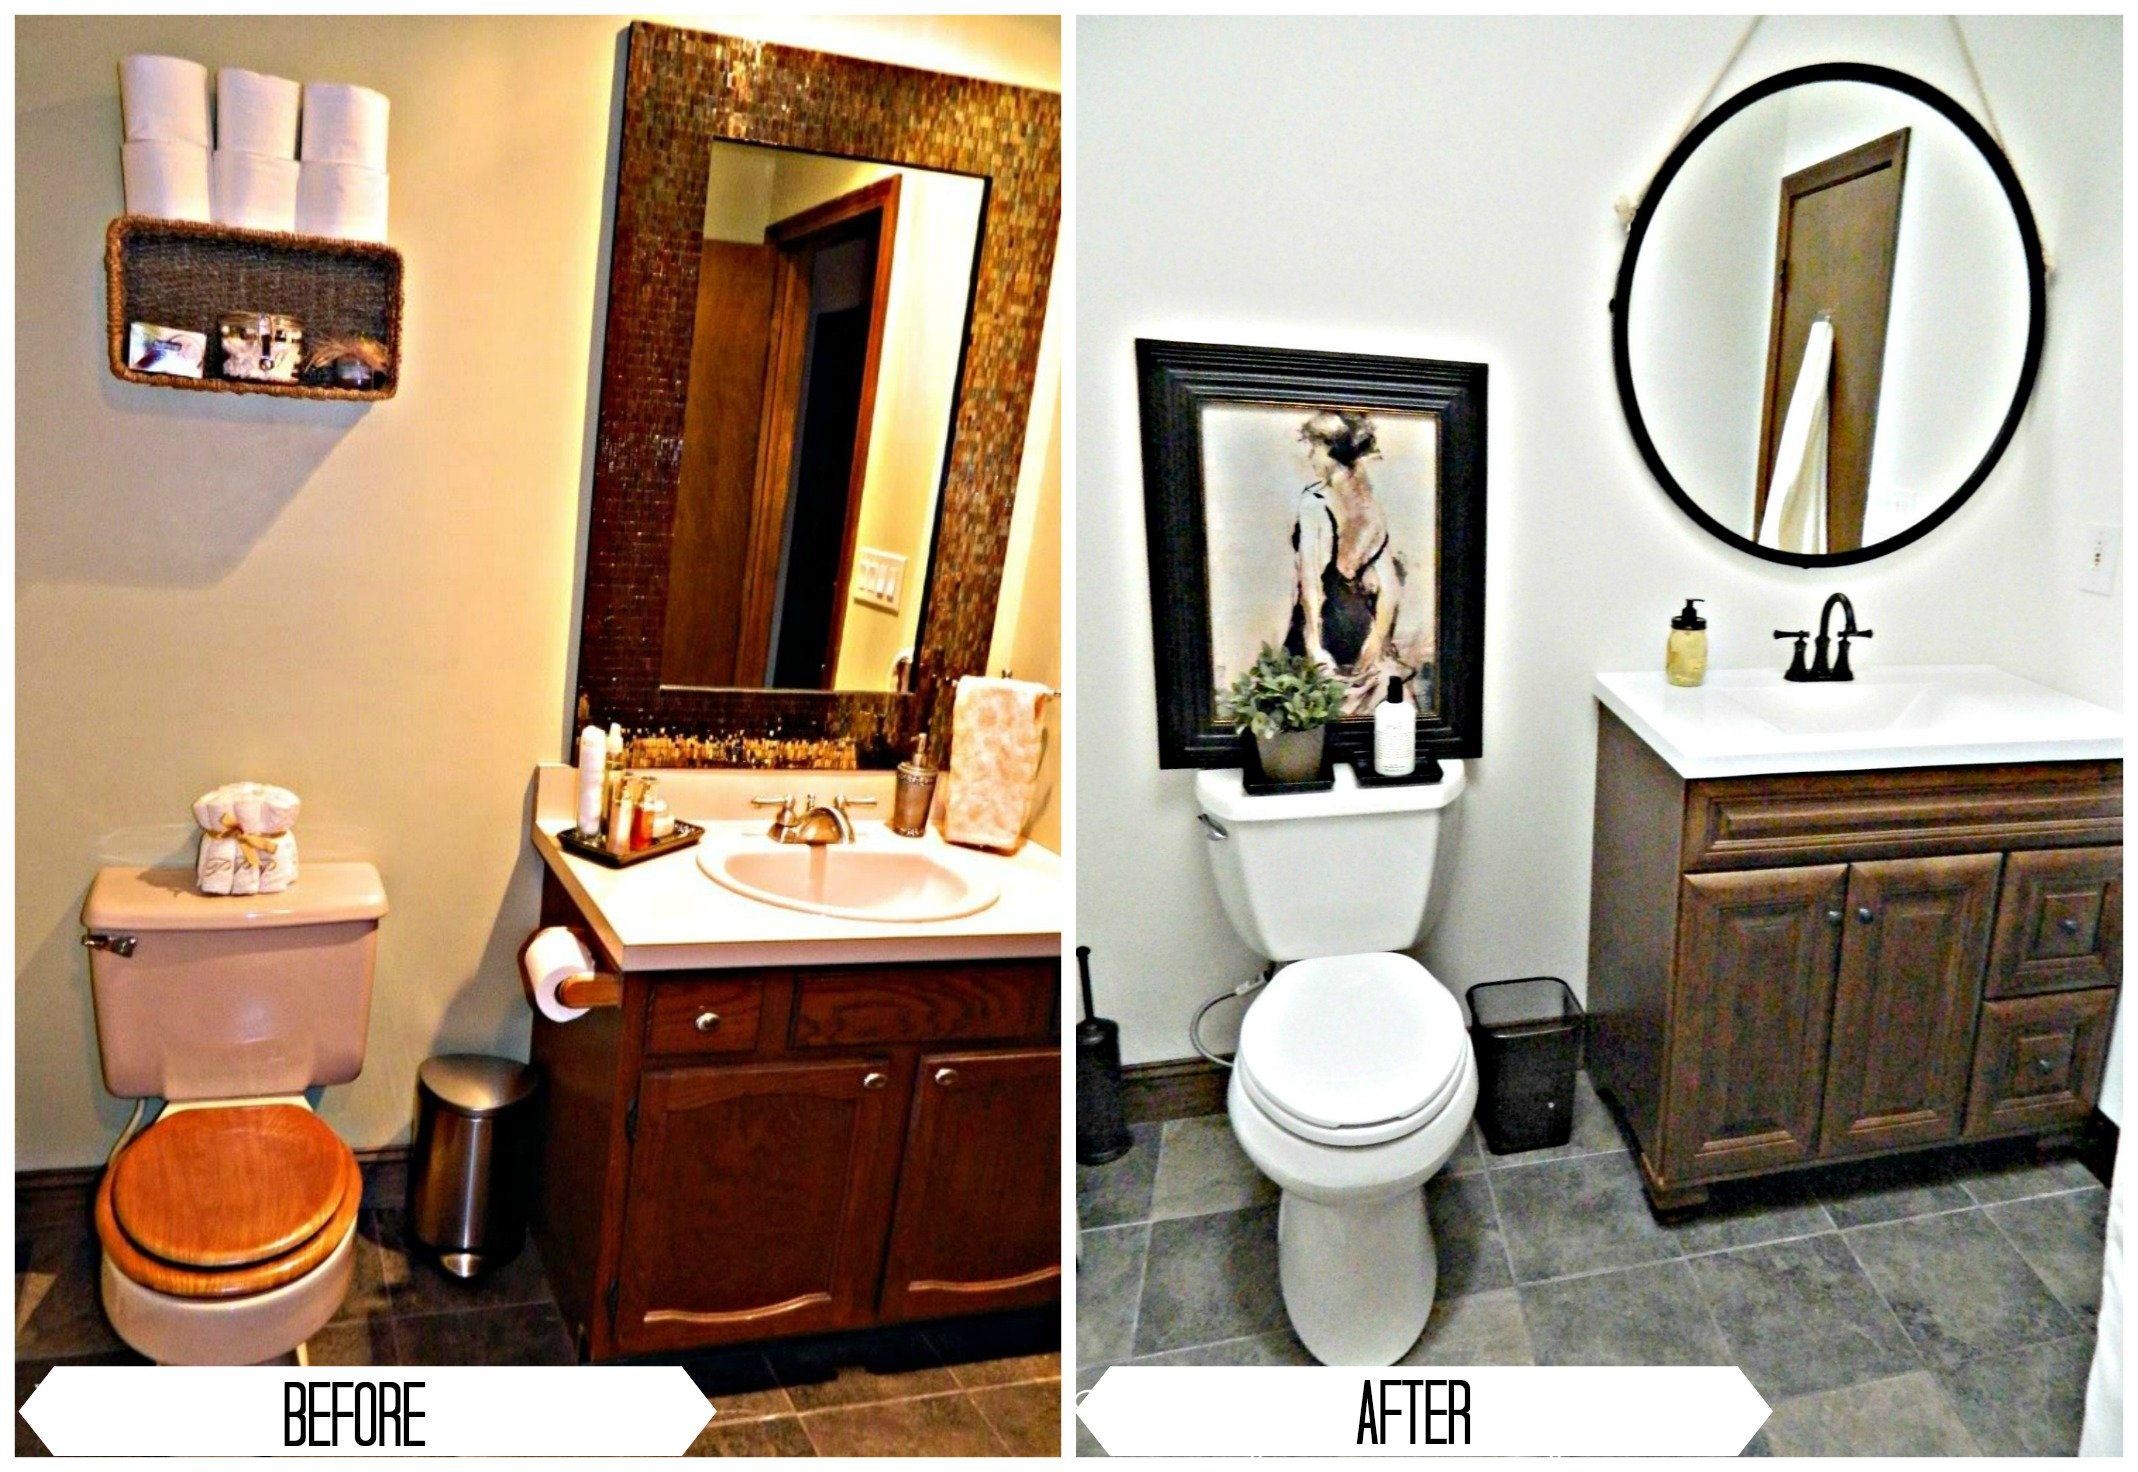 Bathroom Makeover For Under $1000 bathroom renovation under $1,000 | finding silver linings